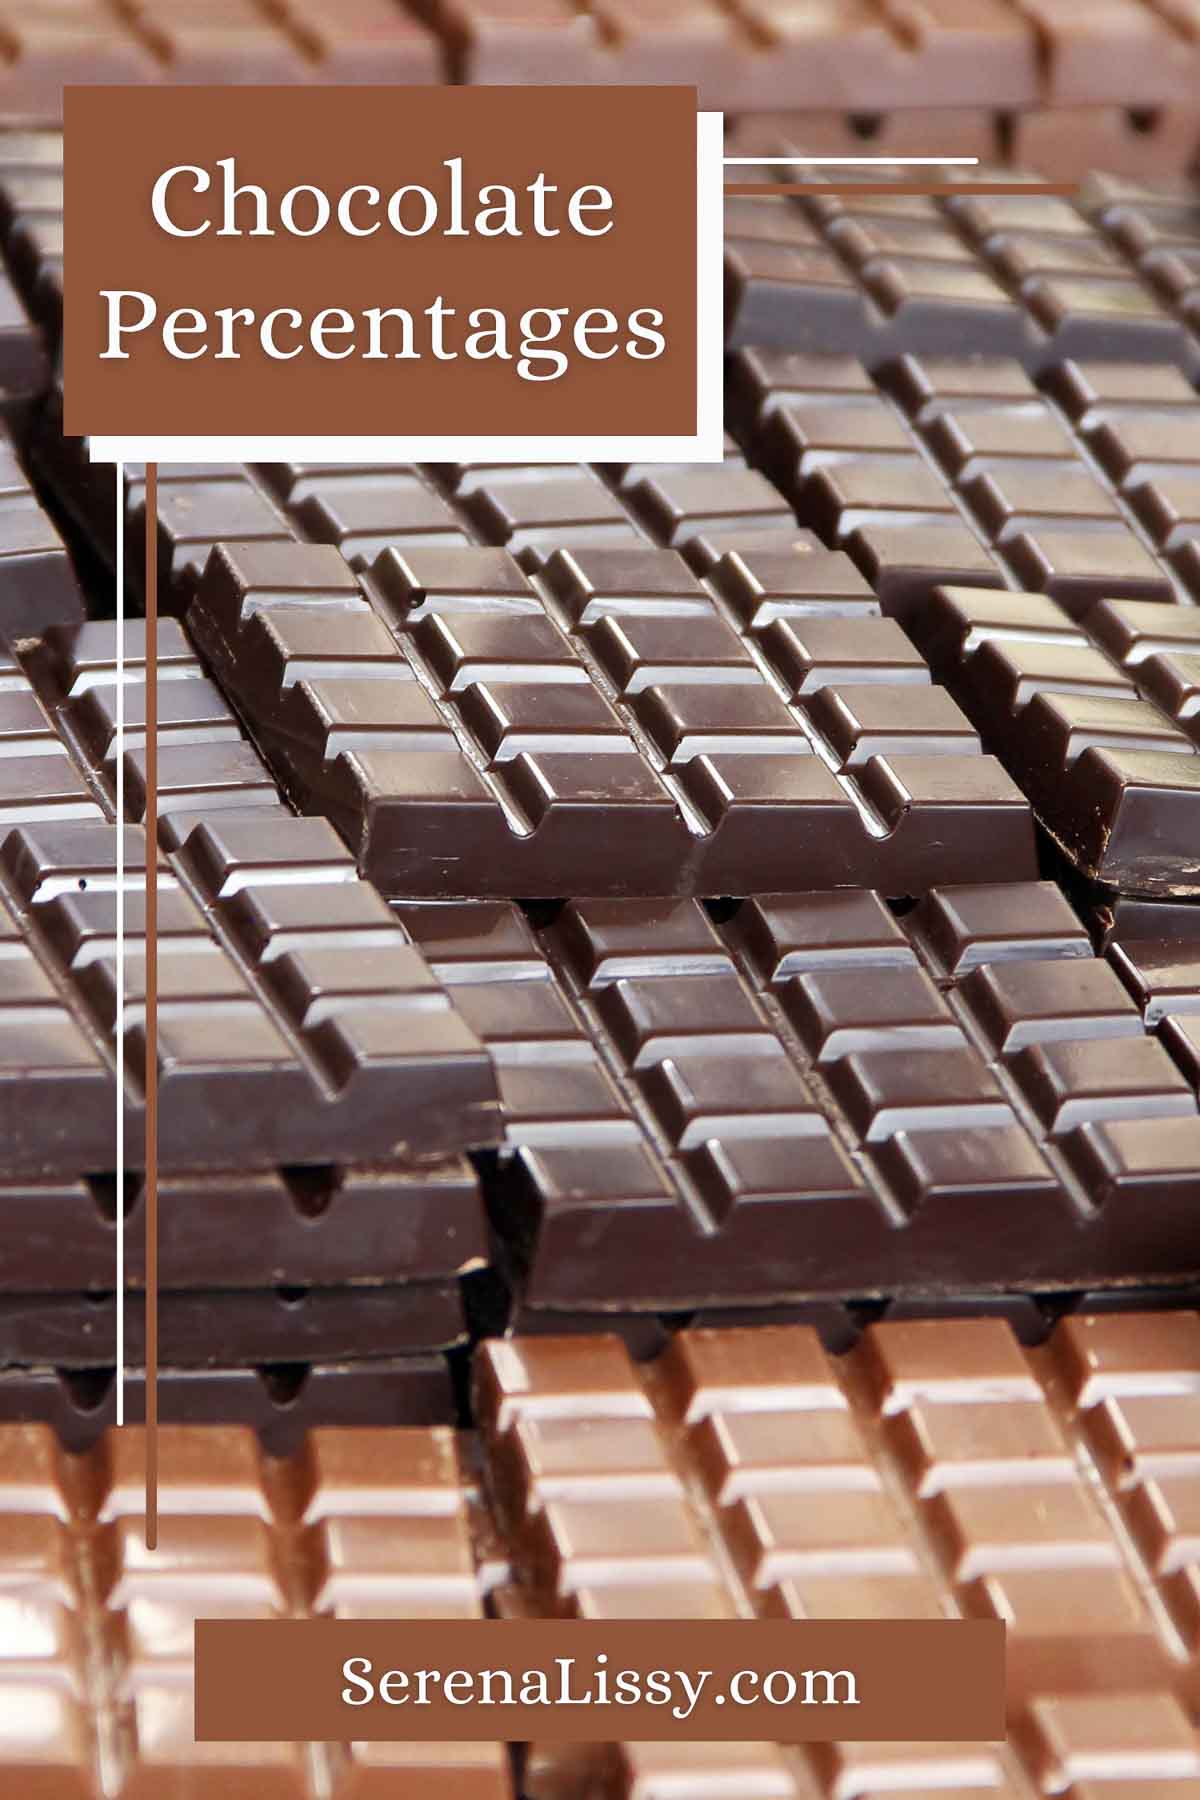 Bars of different chocolate percentages